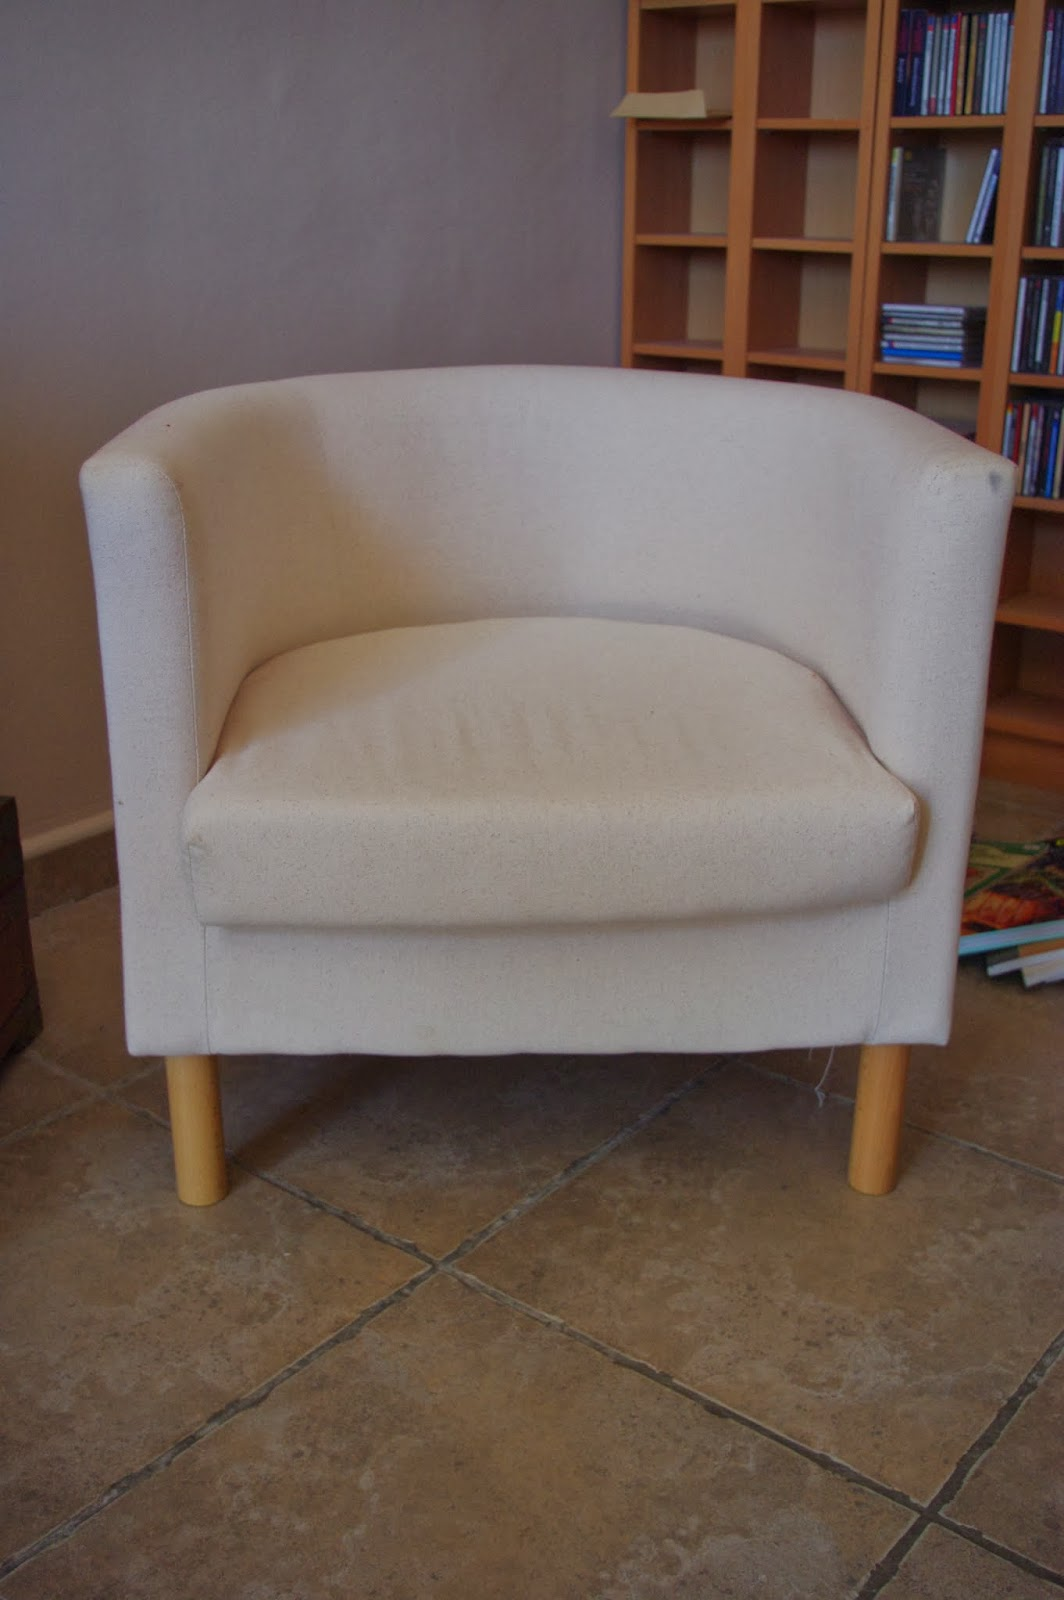 Ikea Tub Chair Covers Uk Abiie High Digame For Sale Range Of Household Items